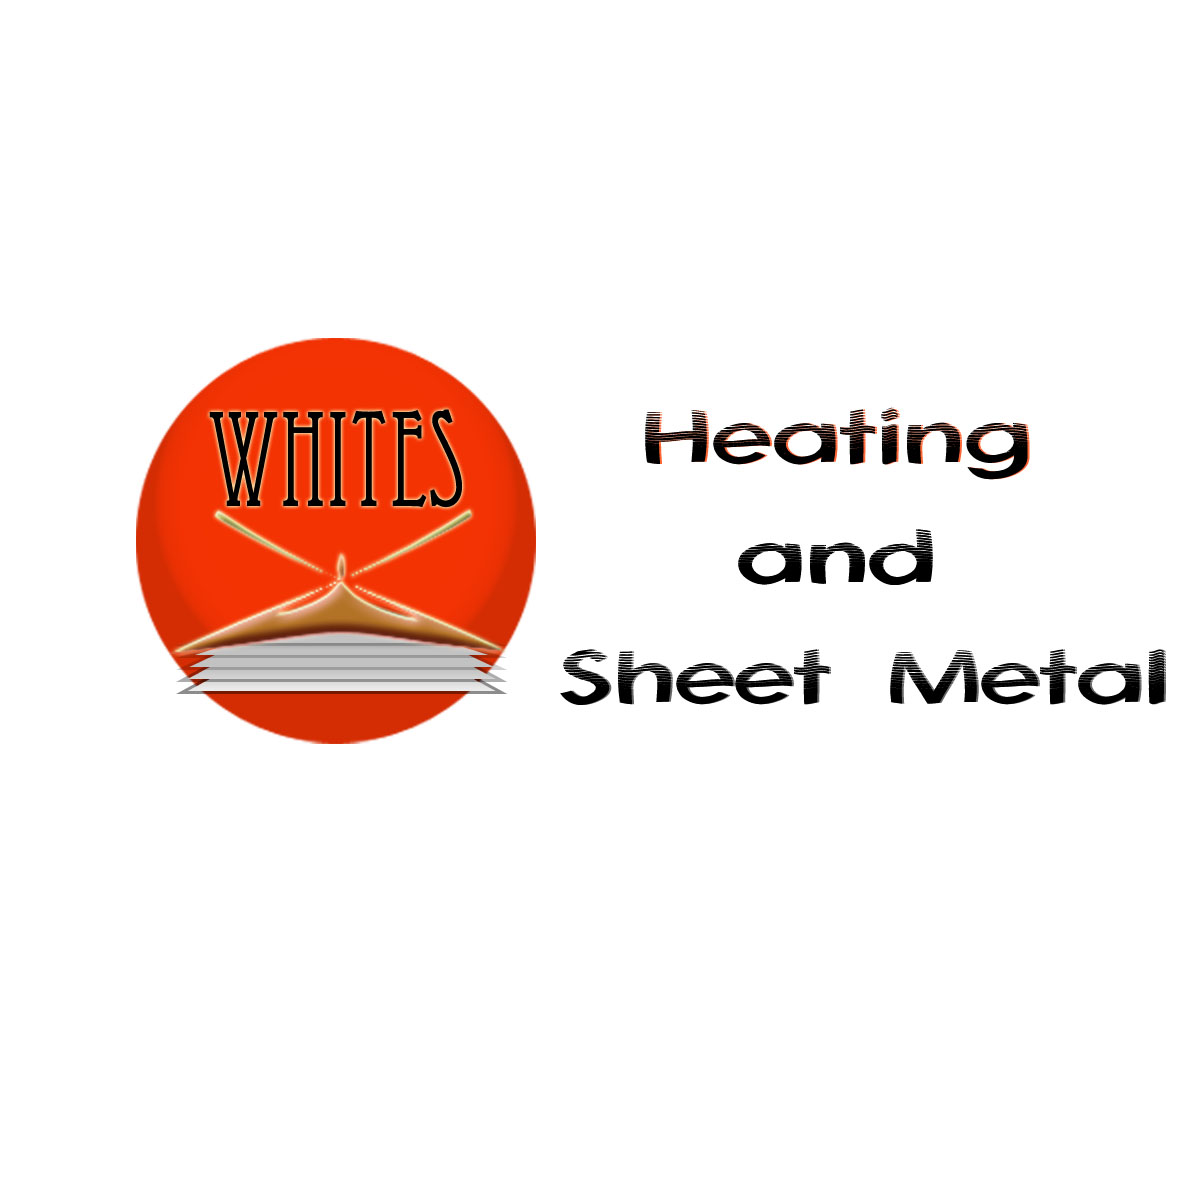 Logo Design by Moag - Entry No. 153 in the Logo Design Contest Imaginative Logo Design for White's Heating and Sheet Metal.